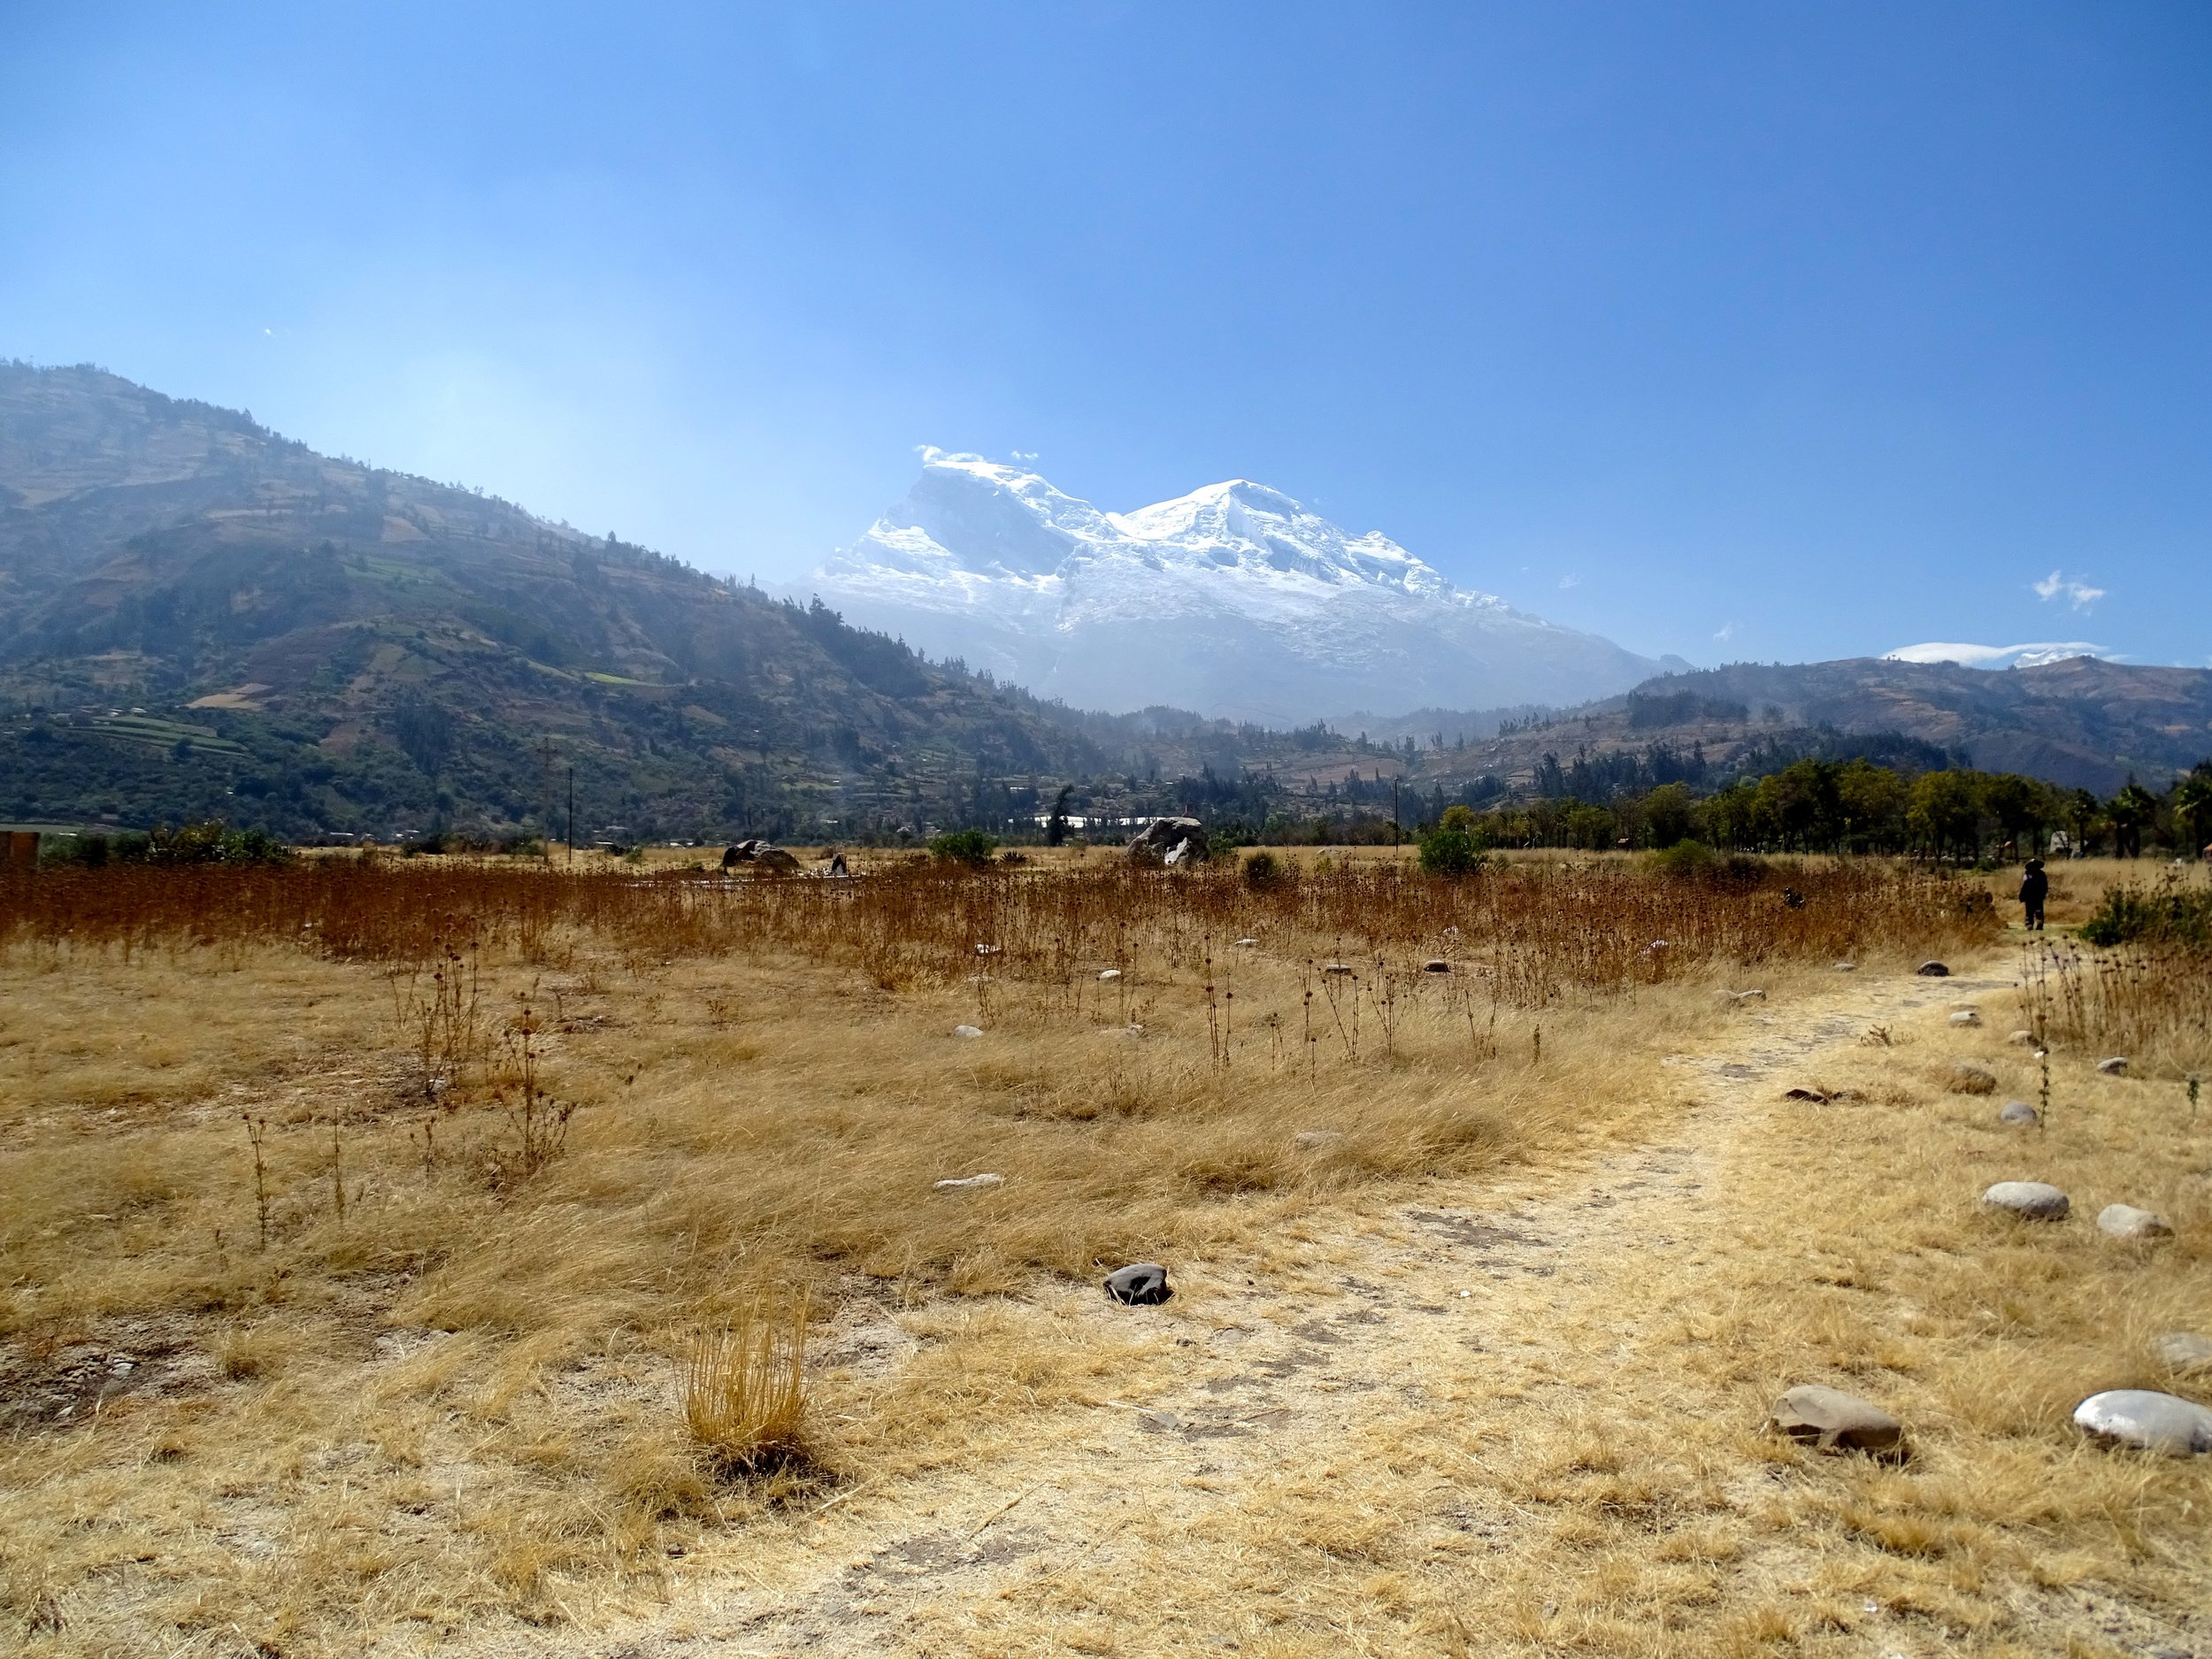 The buried ruins of Yungay, Peru. On May 31, 1970, Nevado Huascaràn in the background, Peru's highest peak, let loose an ice and rock debris flow from the near-vertical west face shown here.